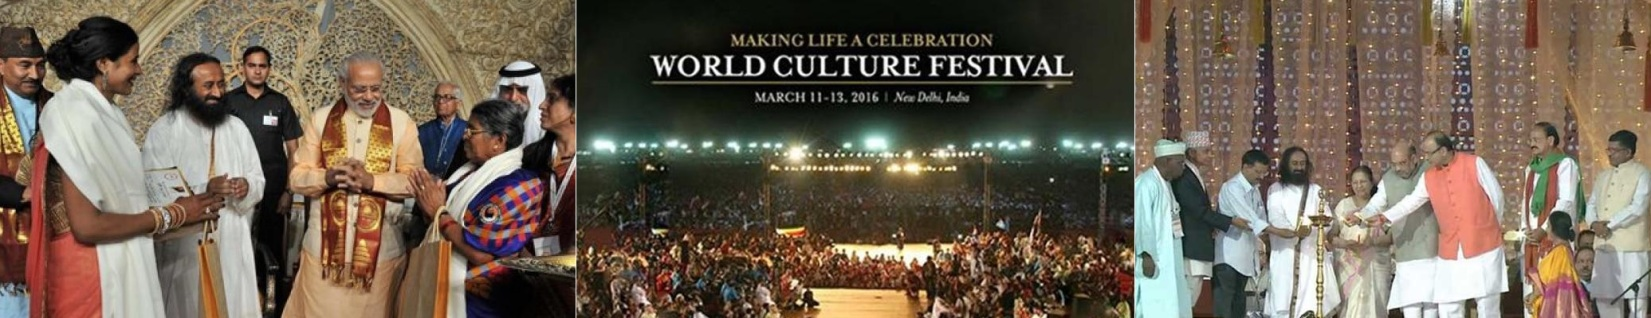 the world cultural festival 2016 nd